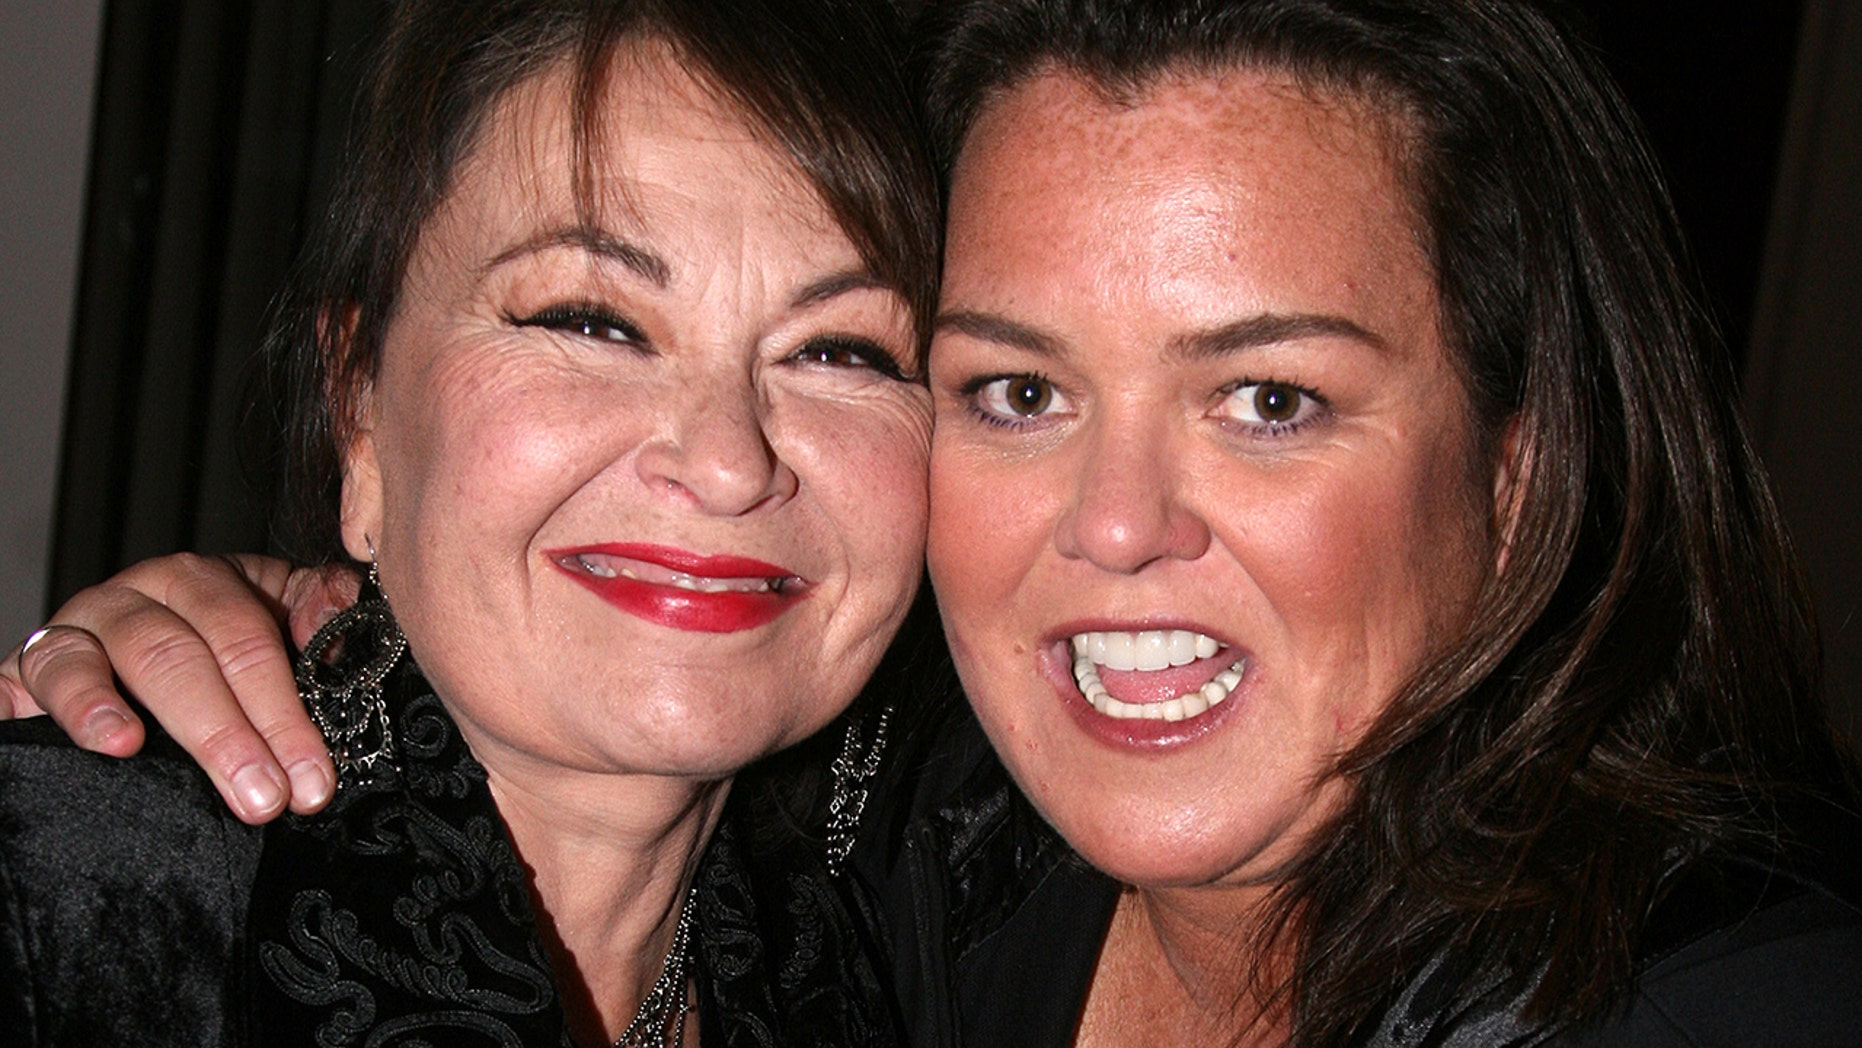 Rosie O'Donnell and Roseanne Barr pose backstage at The 4th Annual New York Comedy Festival at Lincoln Center's Avery Fisher Hall on November 6, 2007 in New York.